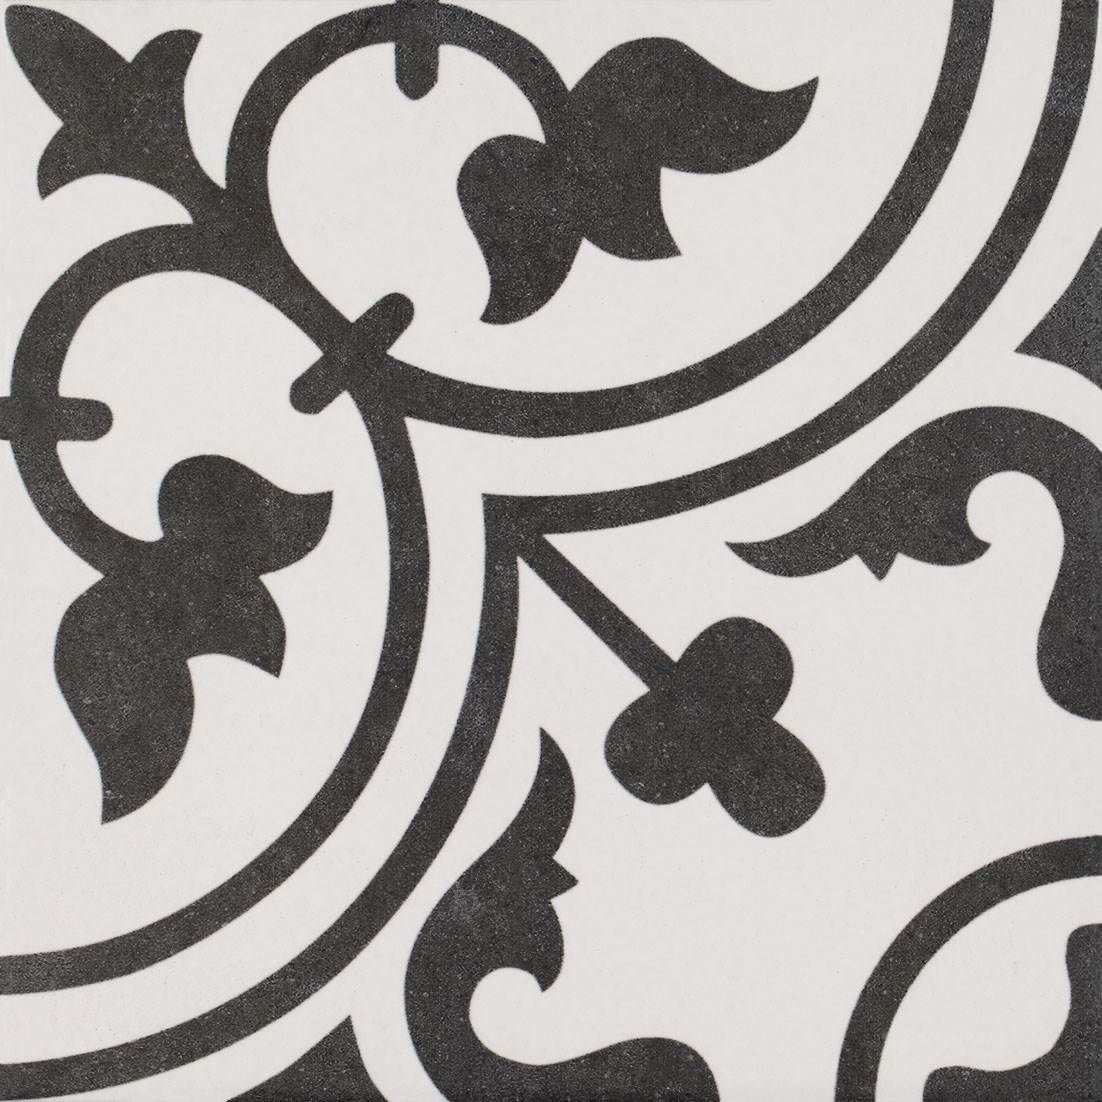 image/catalog/product_series_tiles/1953/Arte.jpg